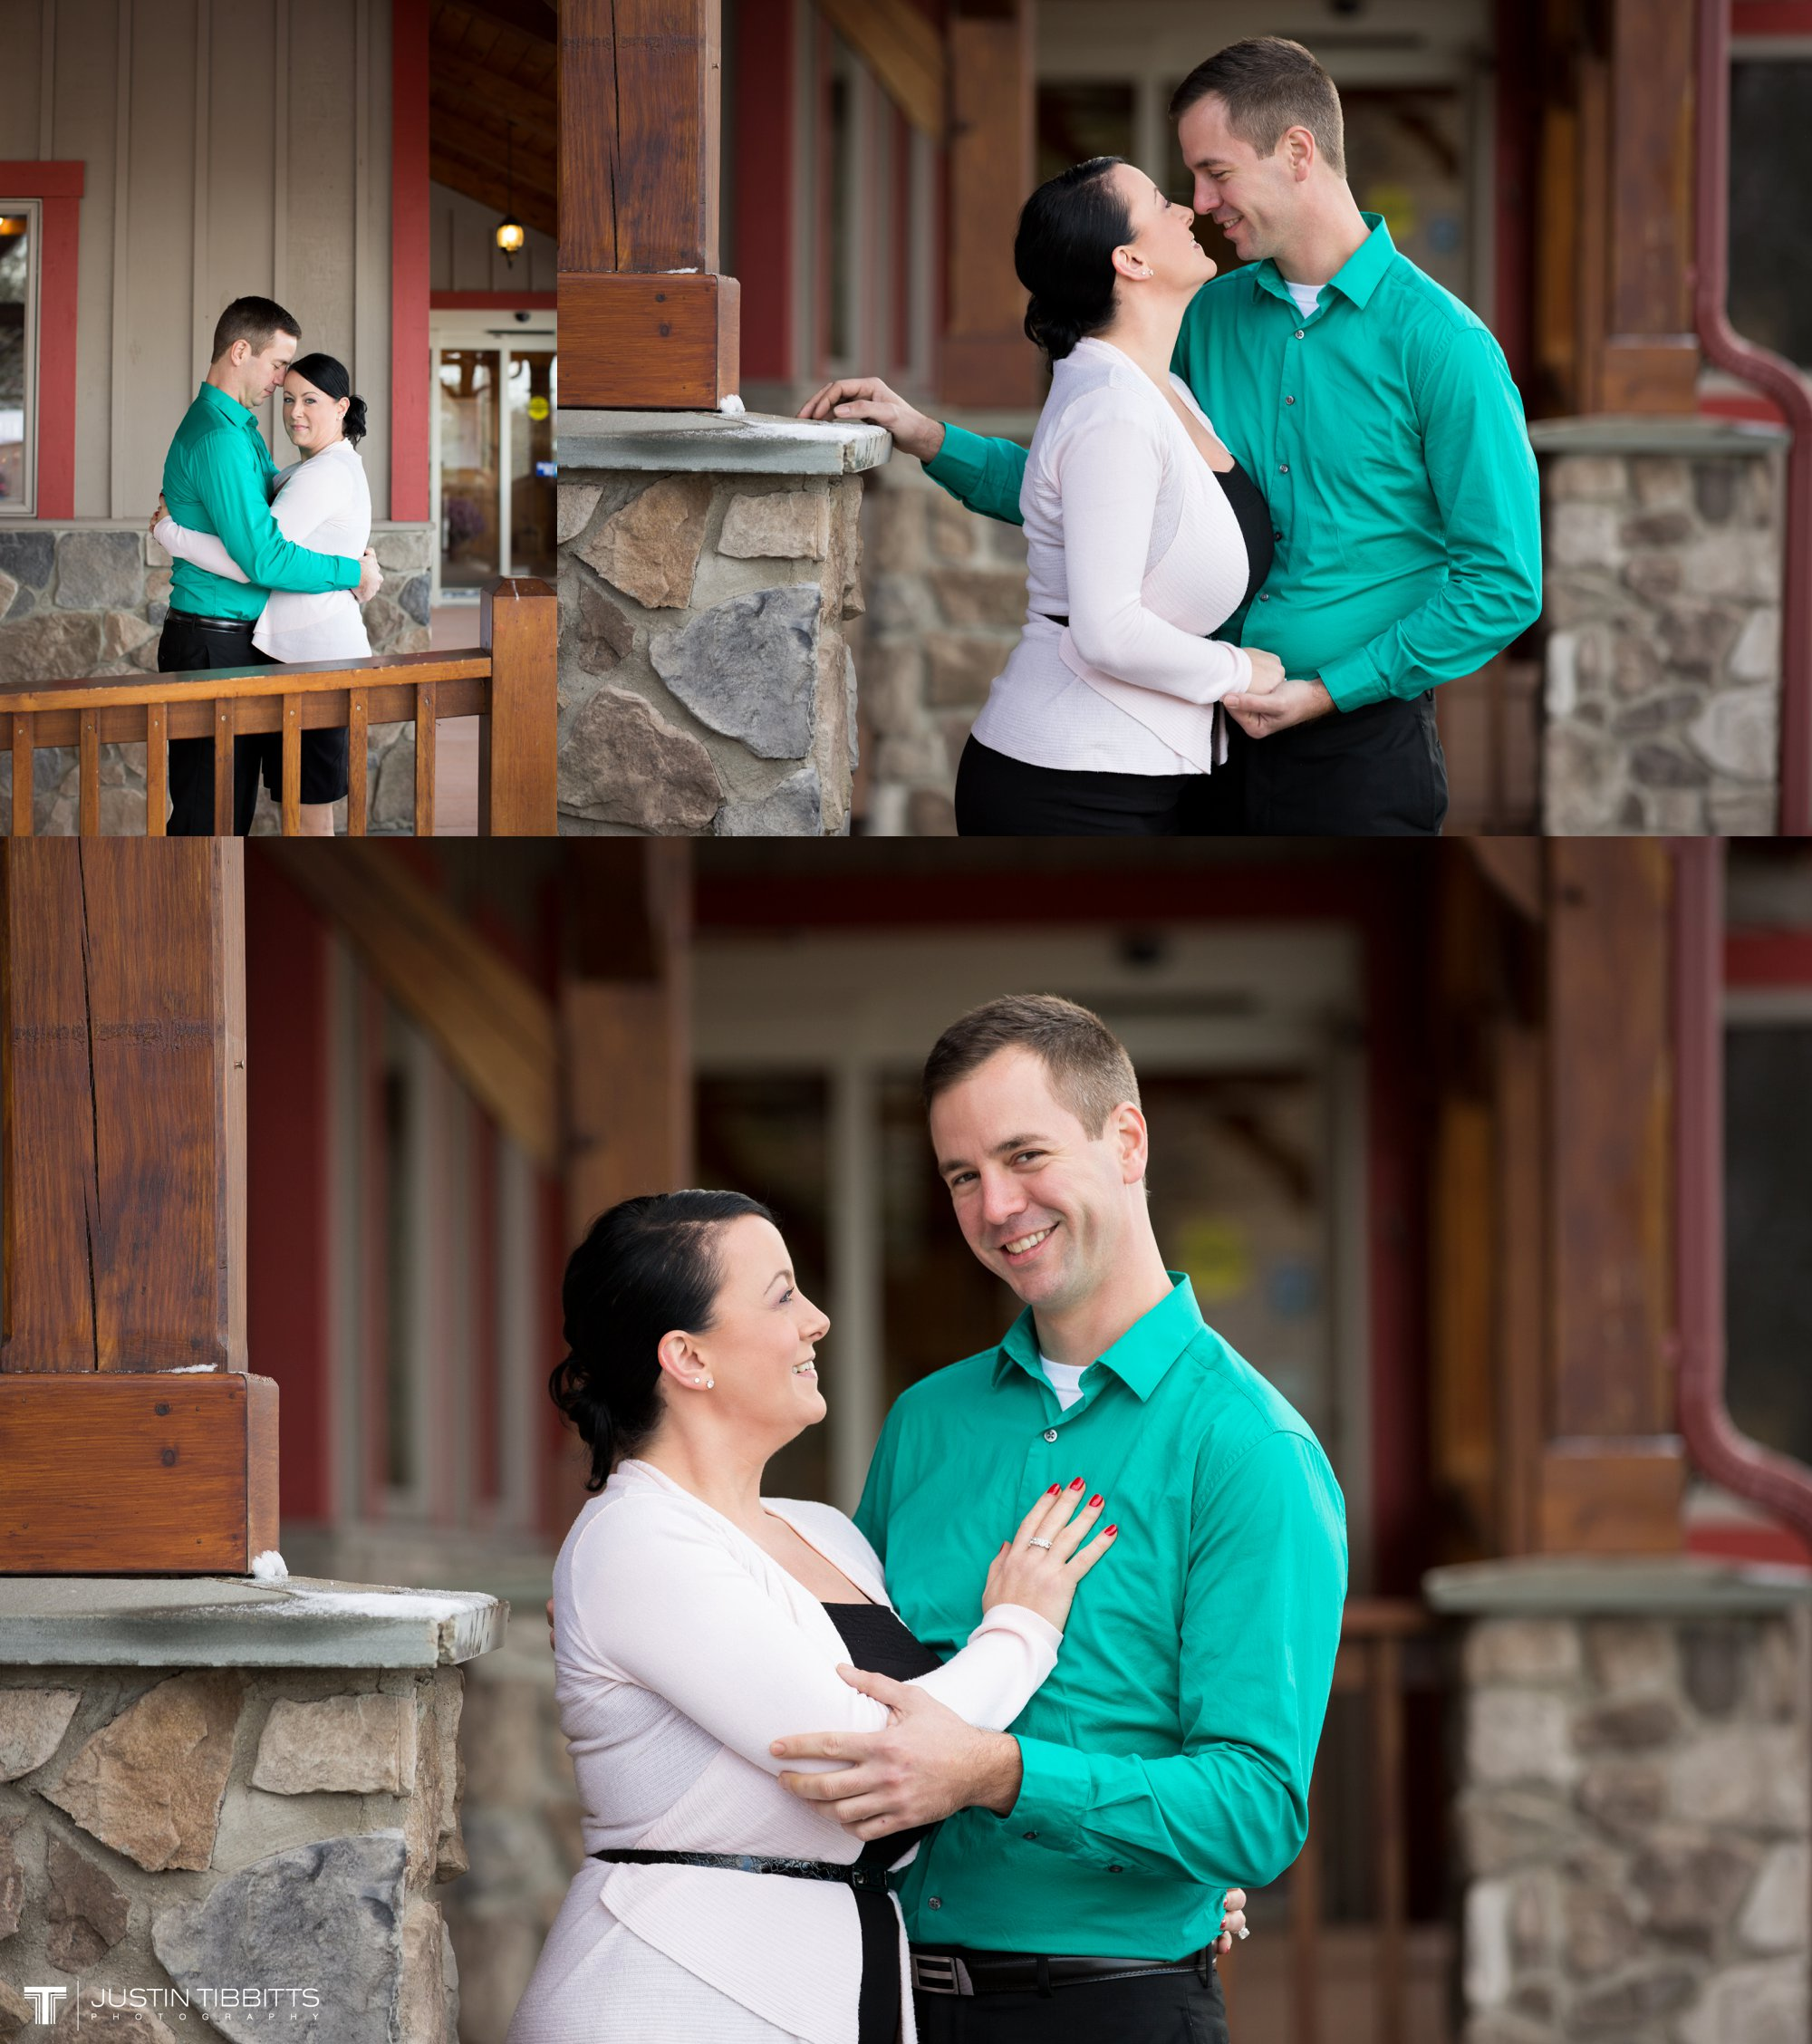 Justin Tibbitts Photography Kristie and Gregs Windham Mountain Resort Engagement Shoot-4